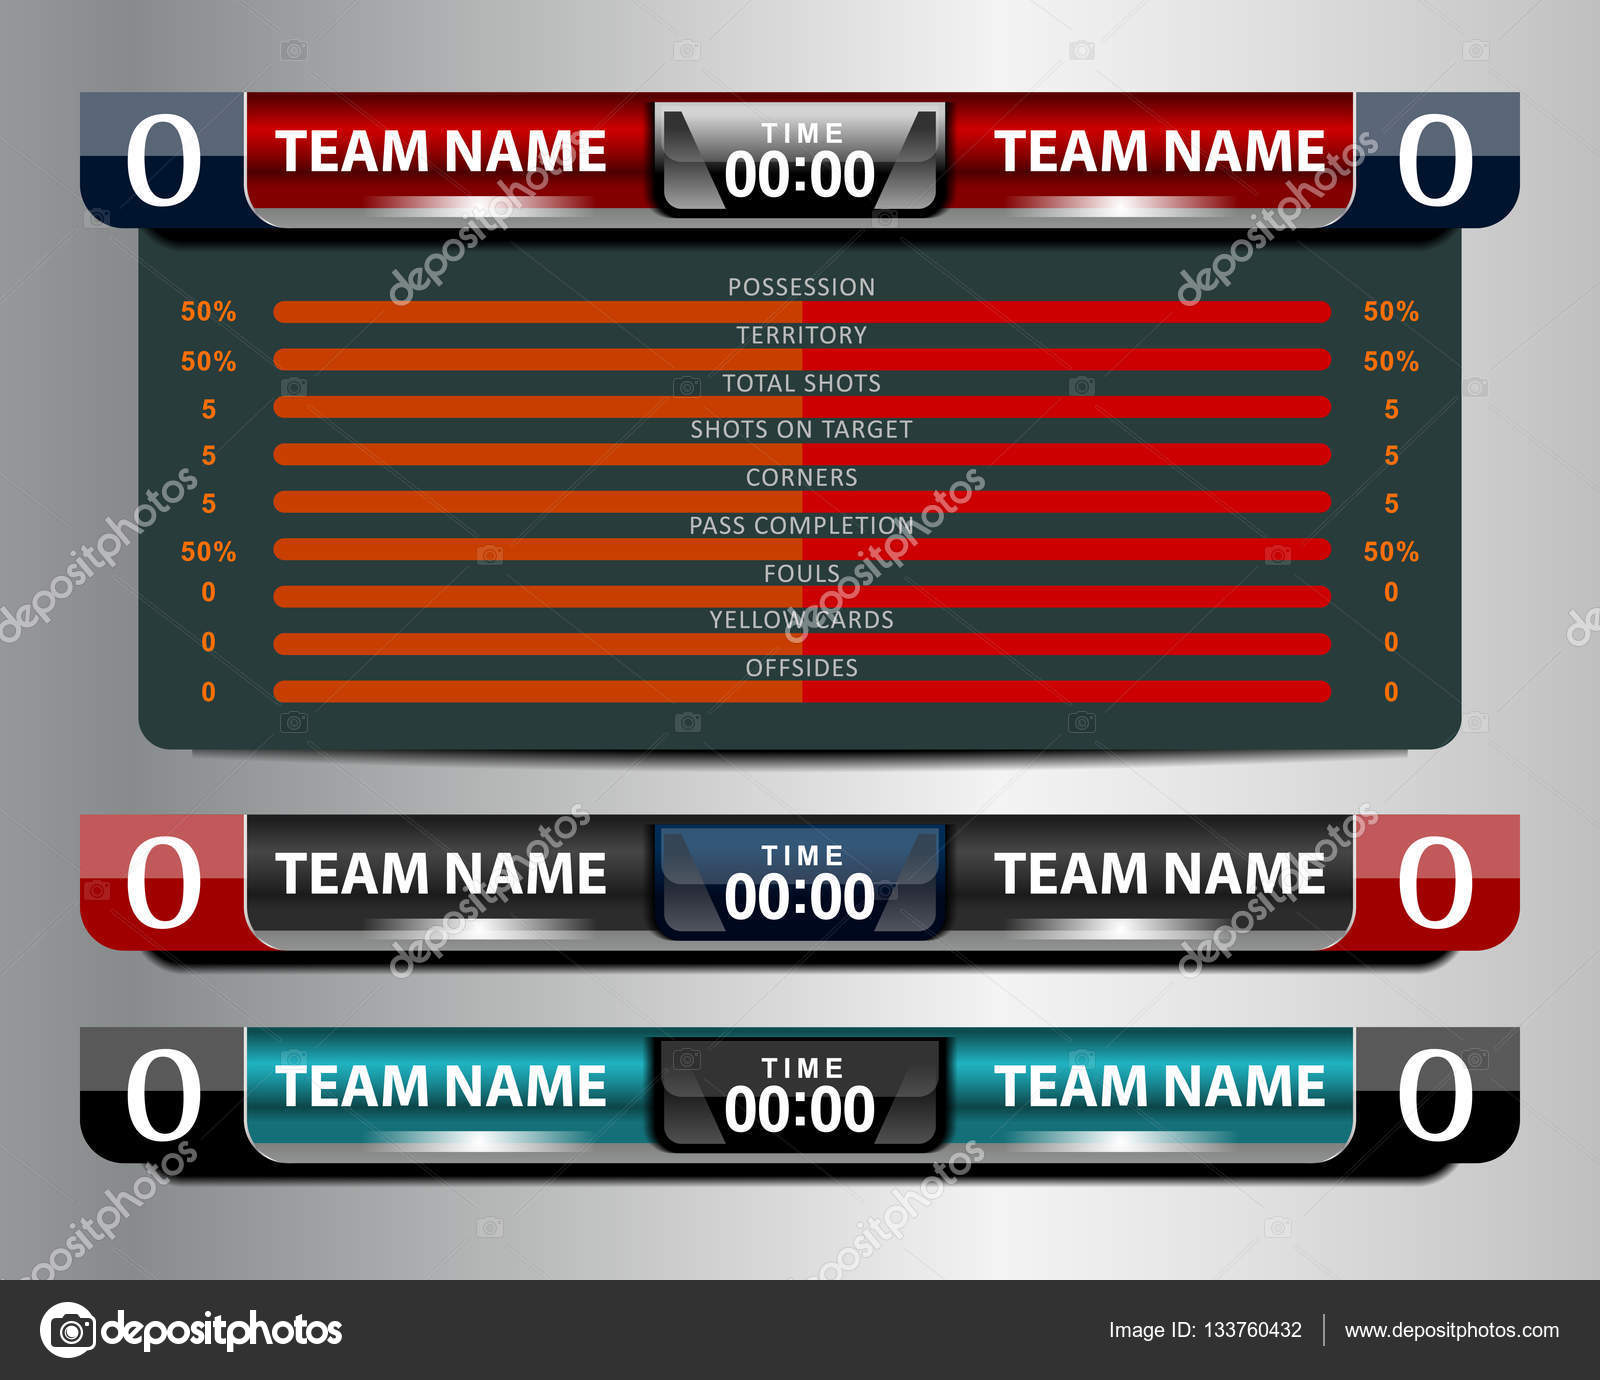 scoreboard template for powerpoint - scoreboard template football or soccer scoreboard